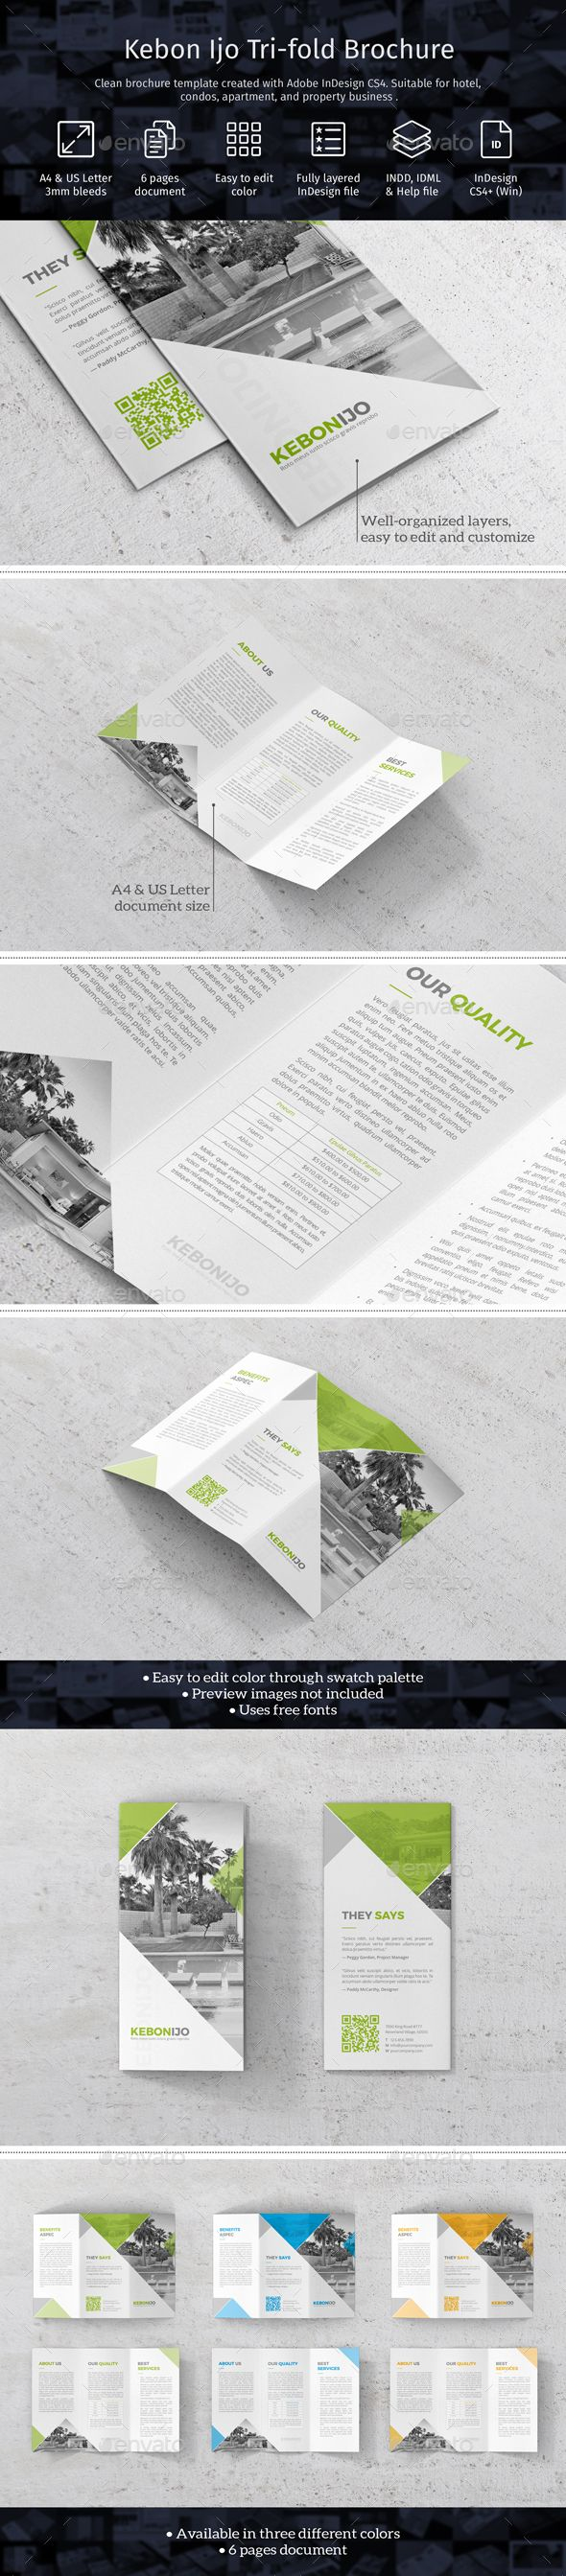 Kebon Ijo Trifold Template by fisihsani Clean brochure template created with Adobe InDesign. Suitable for hotel, condos, apartment, and property business. Template availa